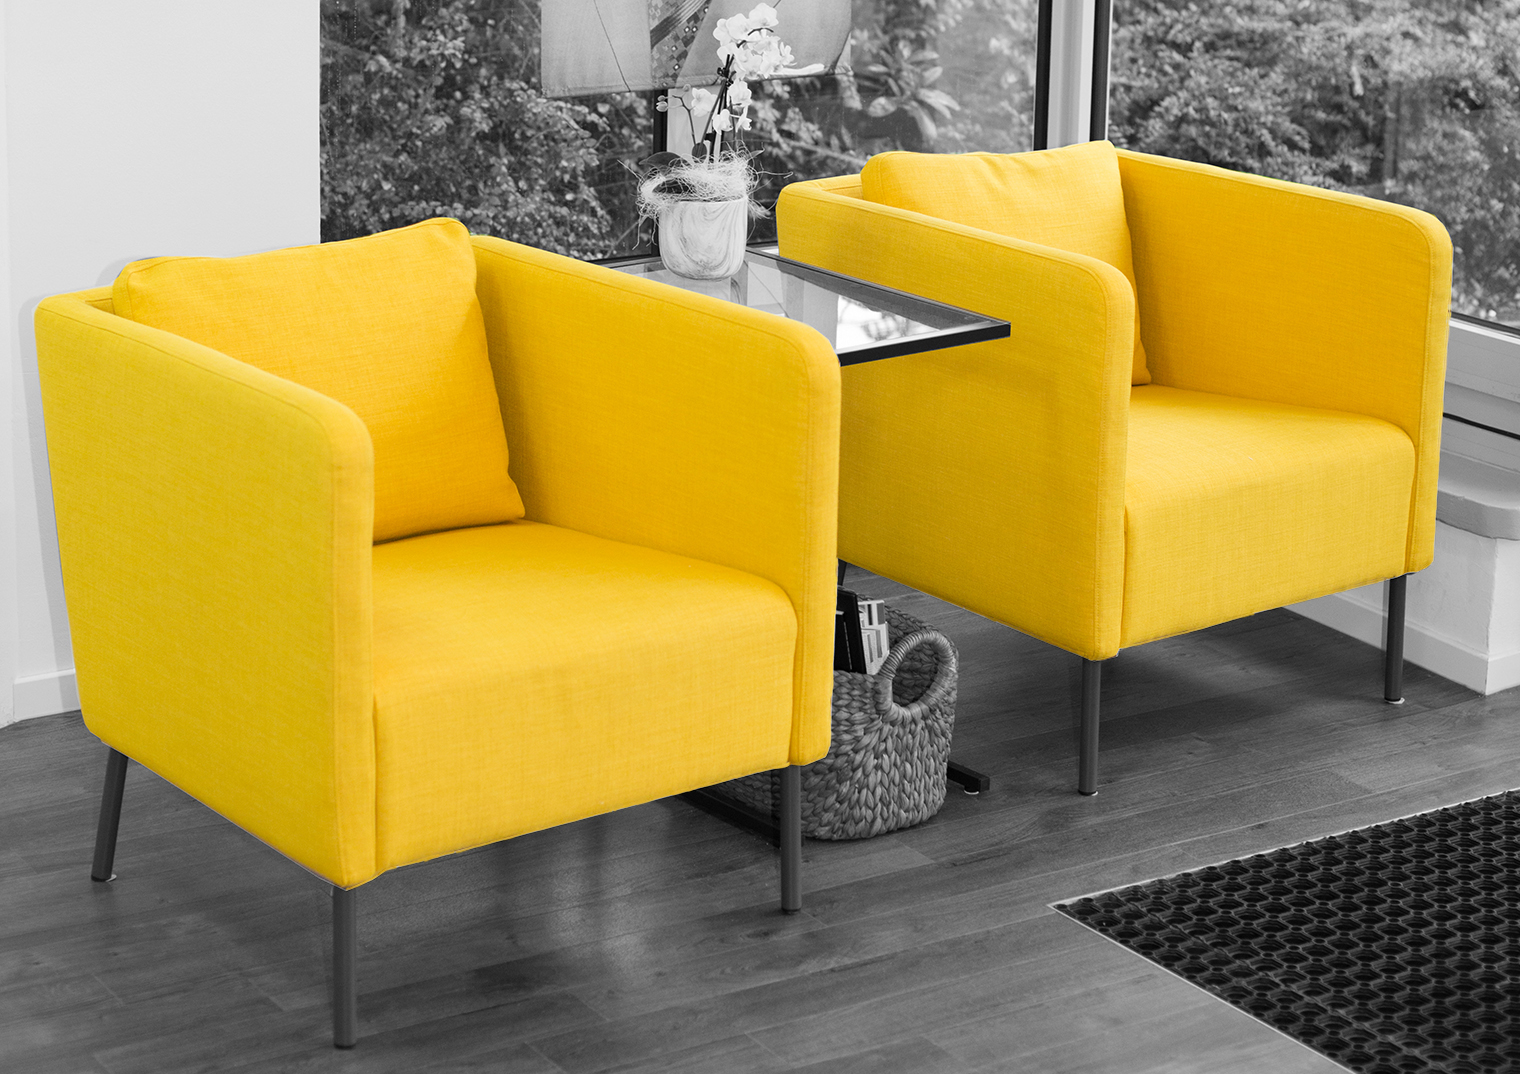 Sessel_1520_1074_yellow_quer